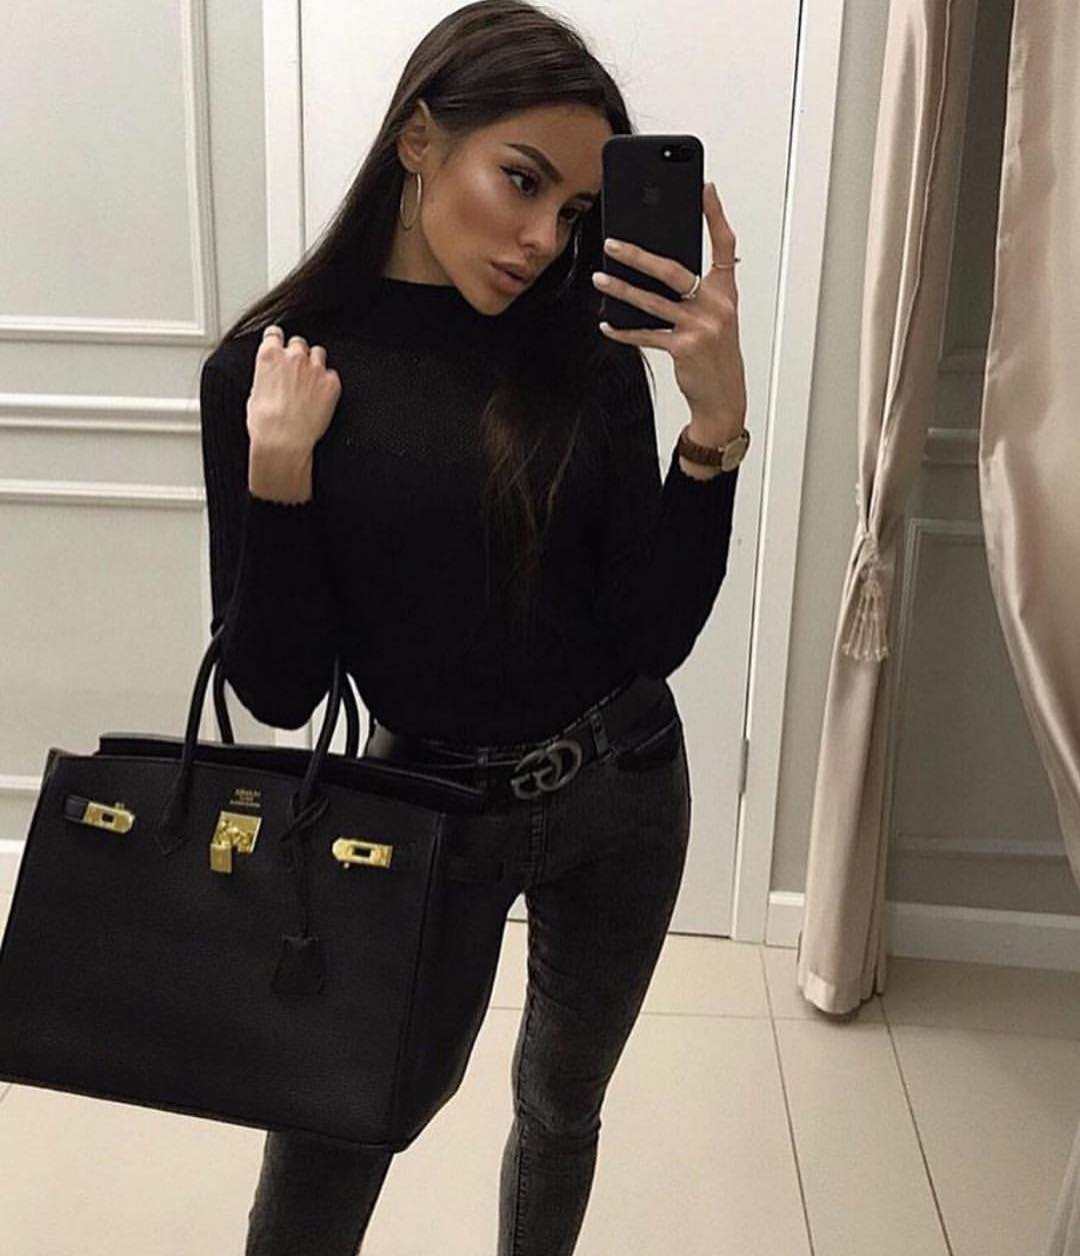 All Black OOTD: Sweater And Skinny Jeans 2019